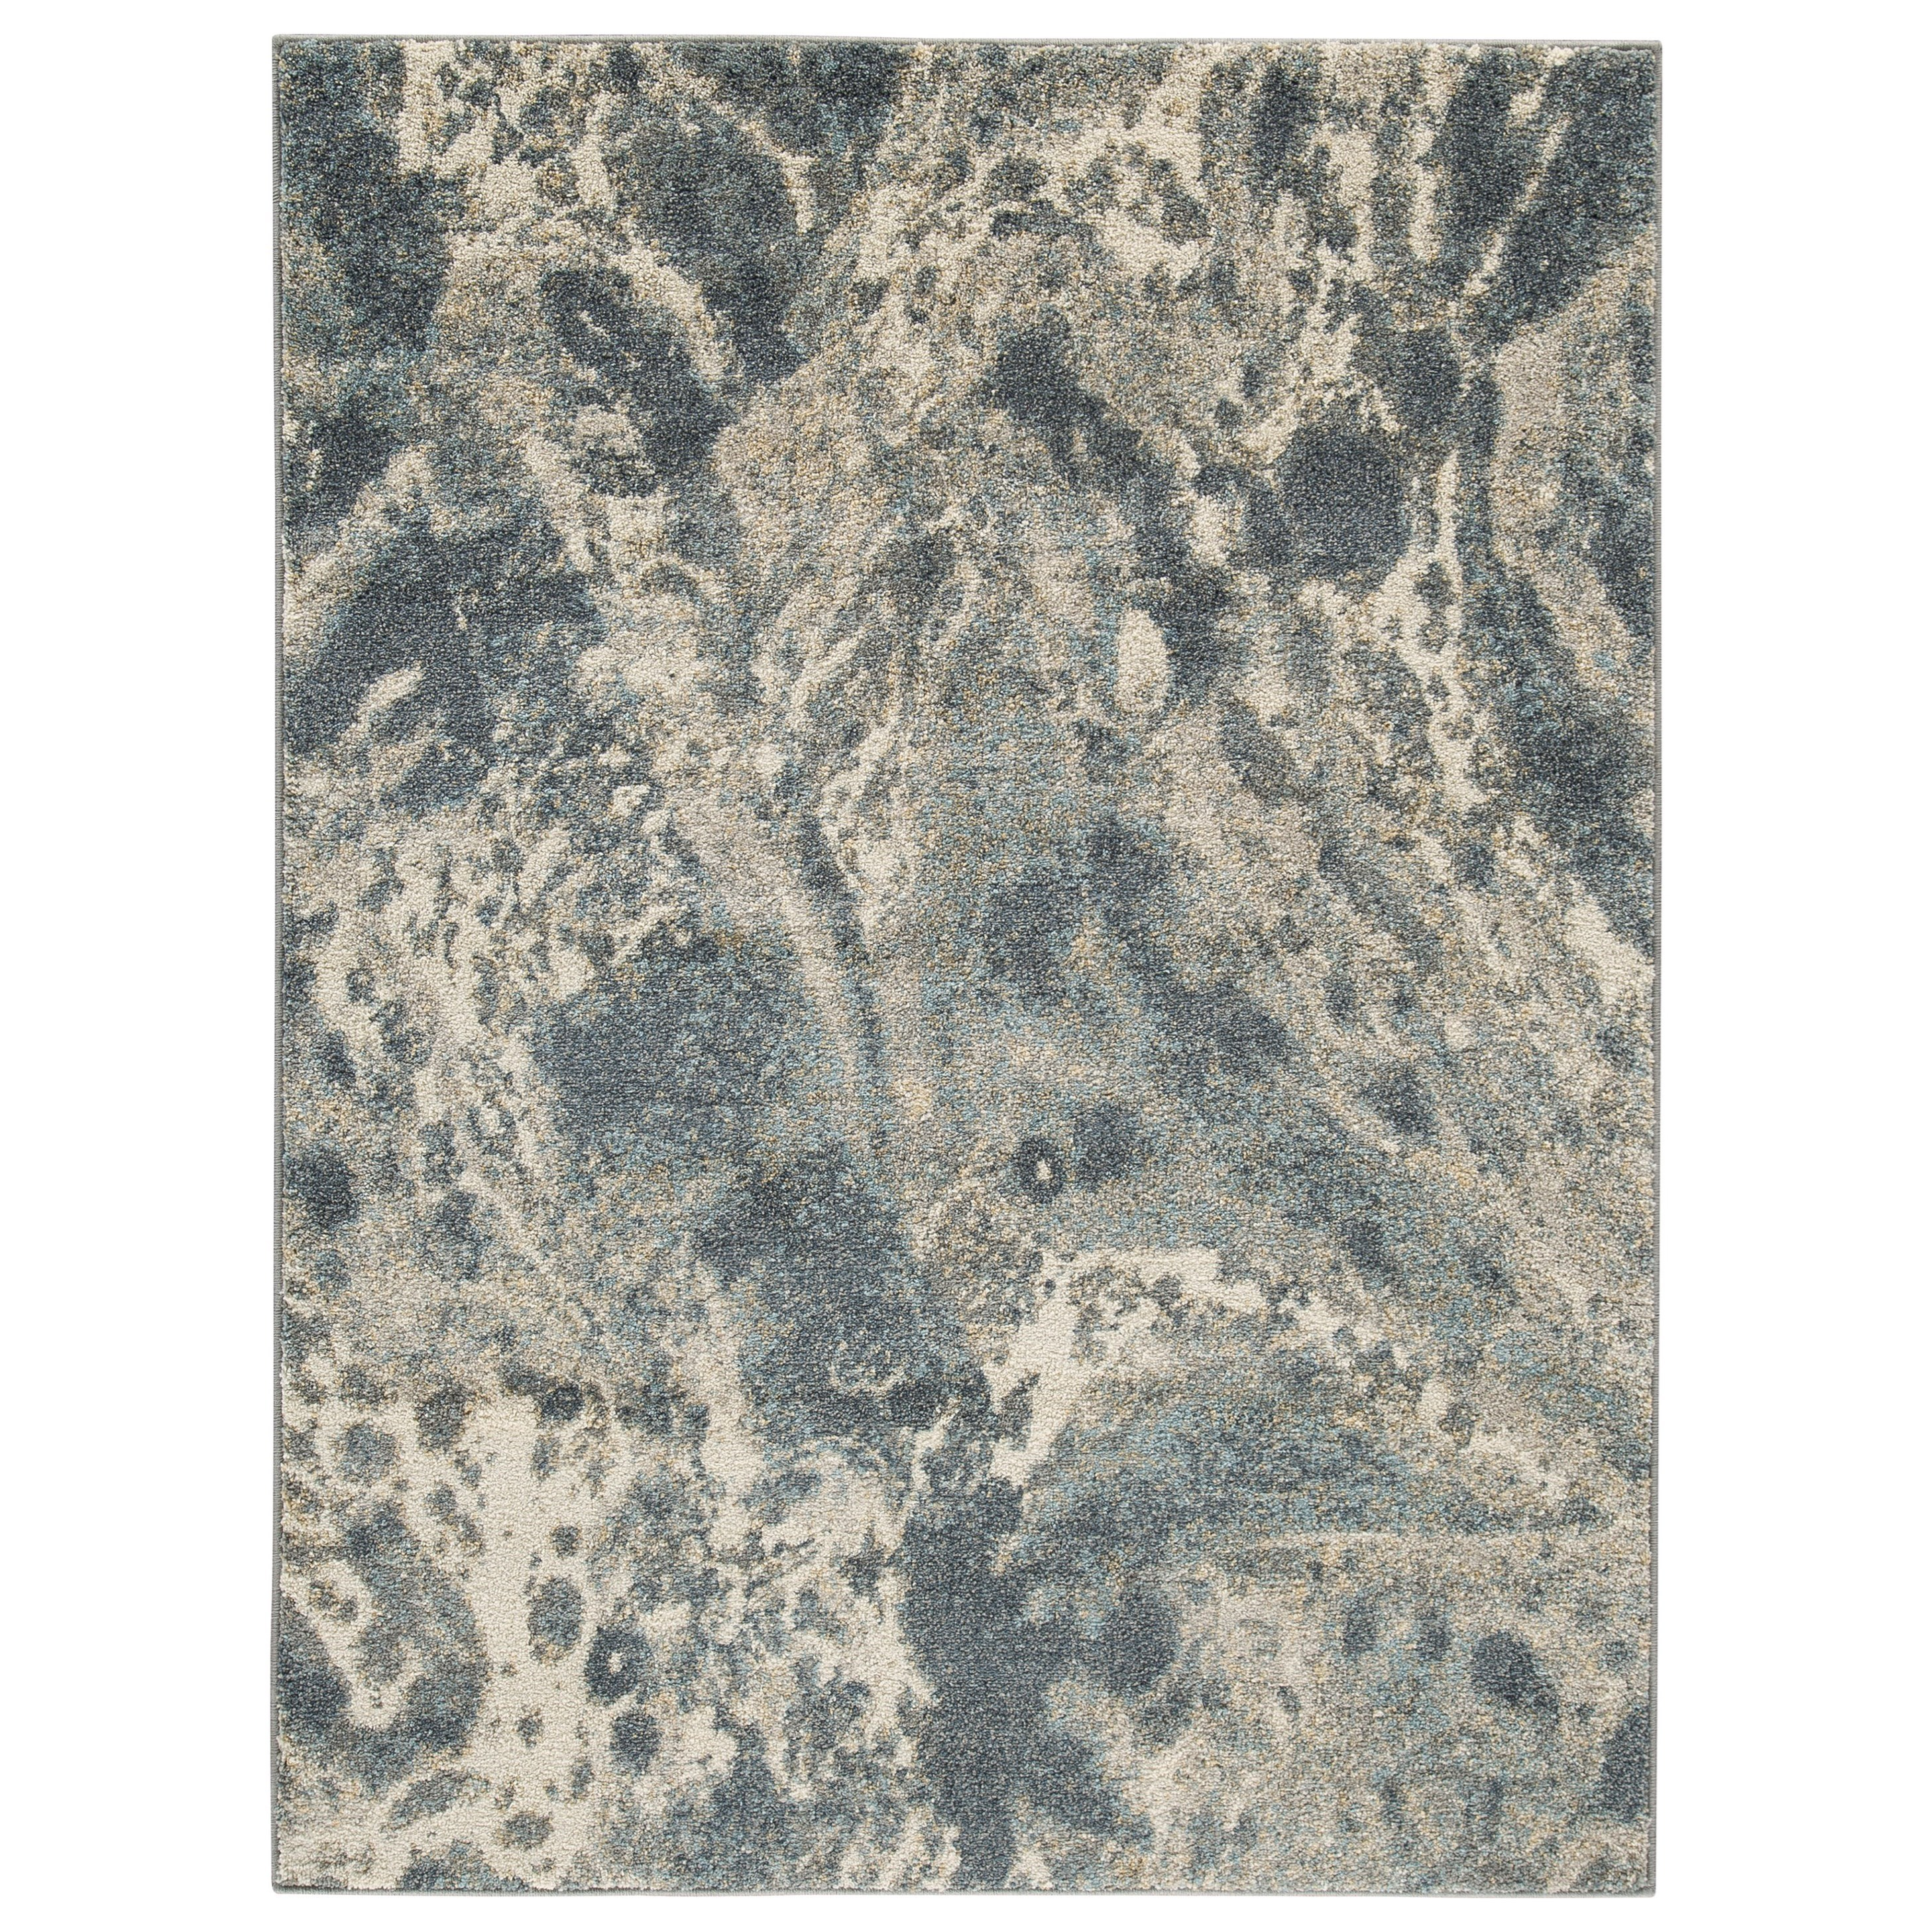 Contemporary Area Rugs Jyoti Blue/Gray/Tan Large Rug by Signature Design by Ashley at Northeast Factory Direct